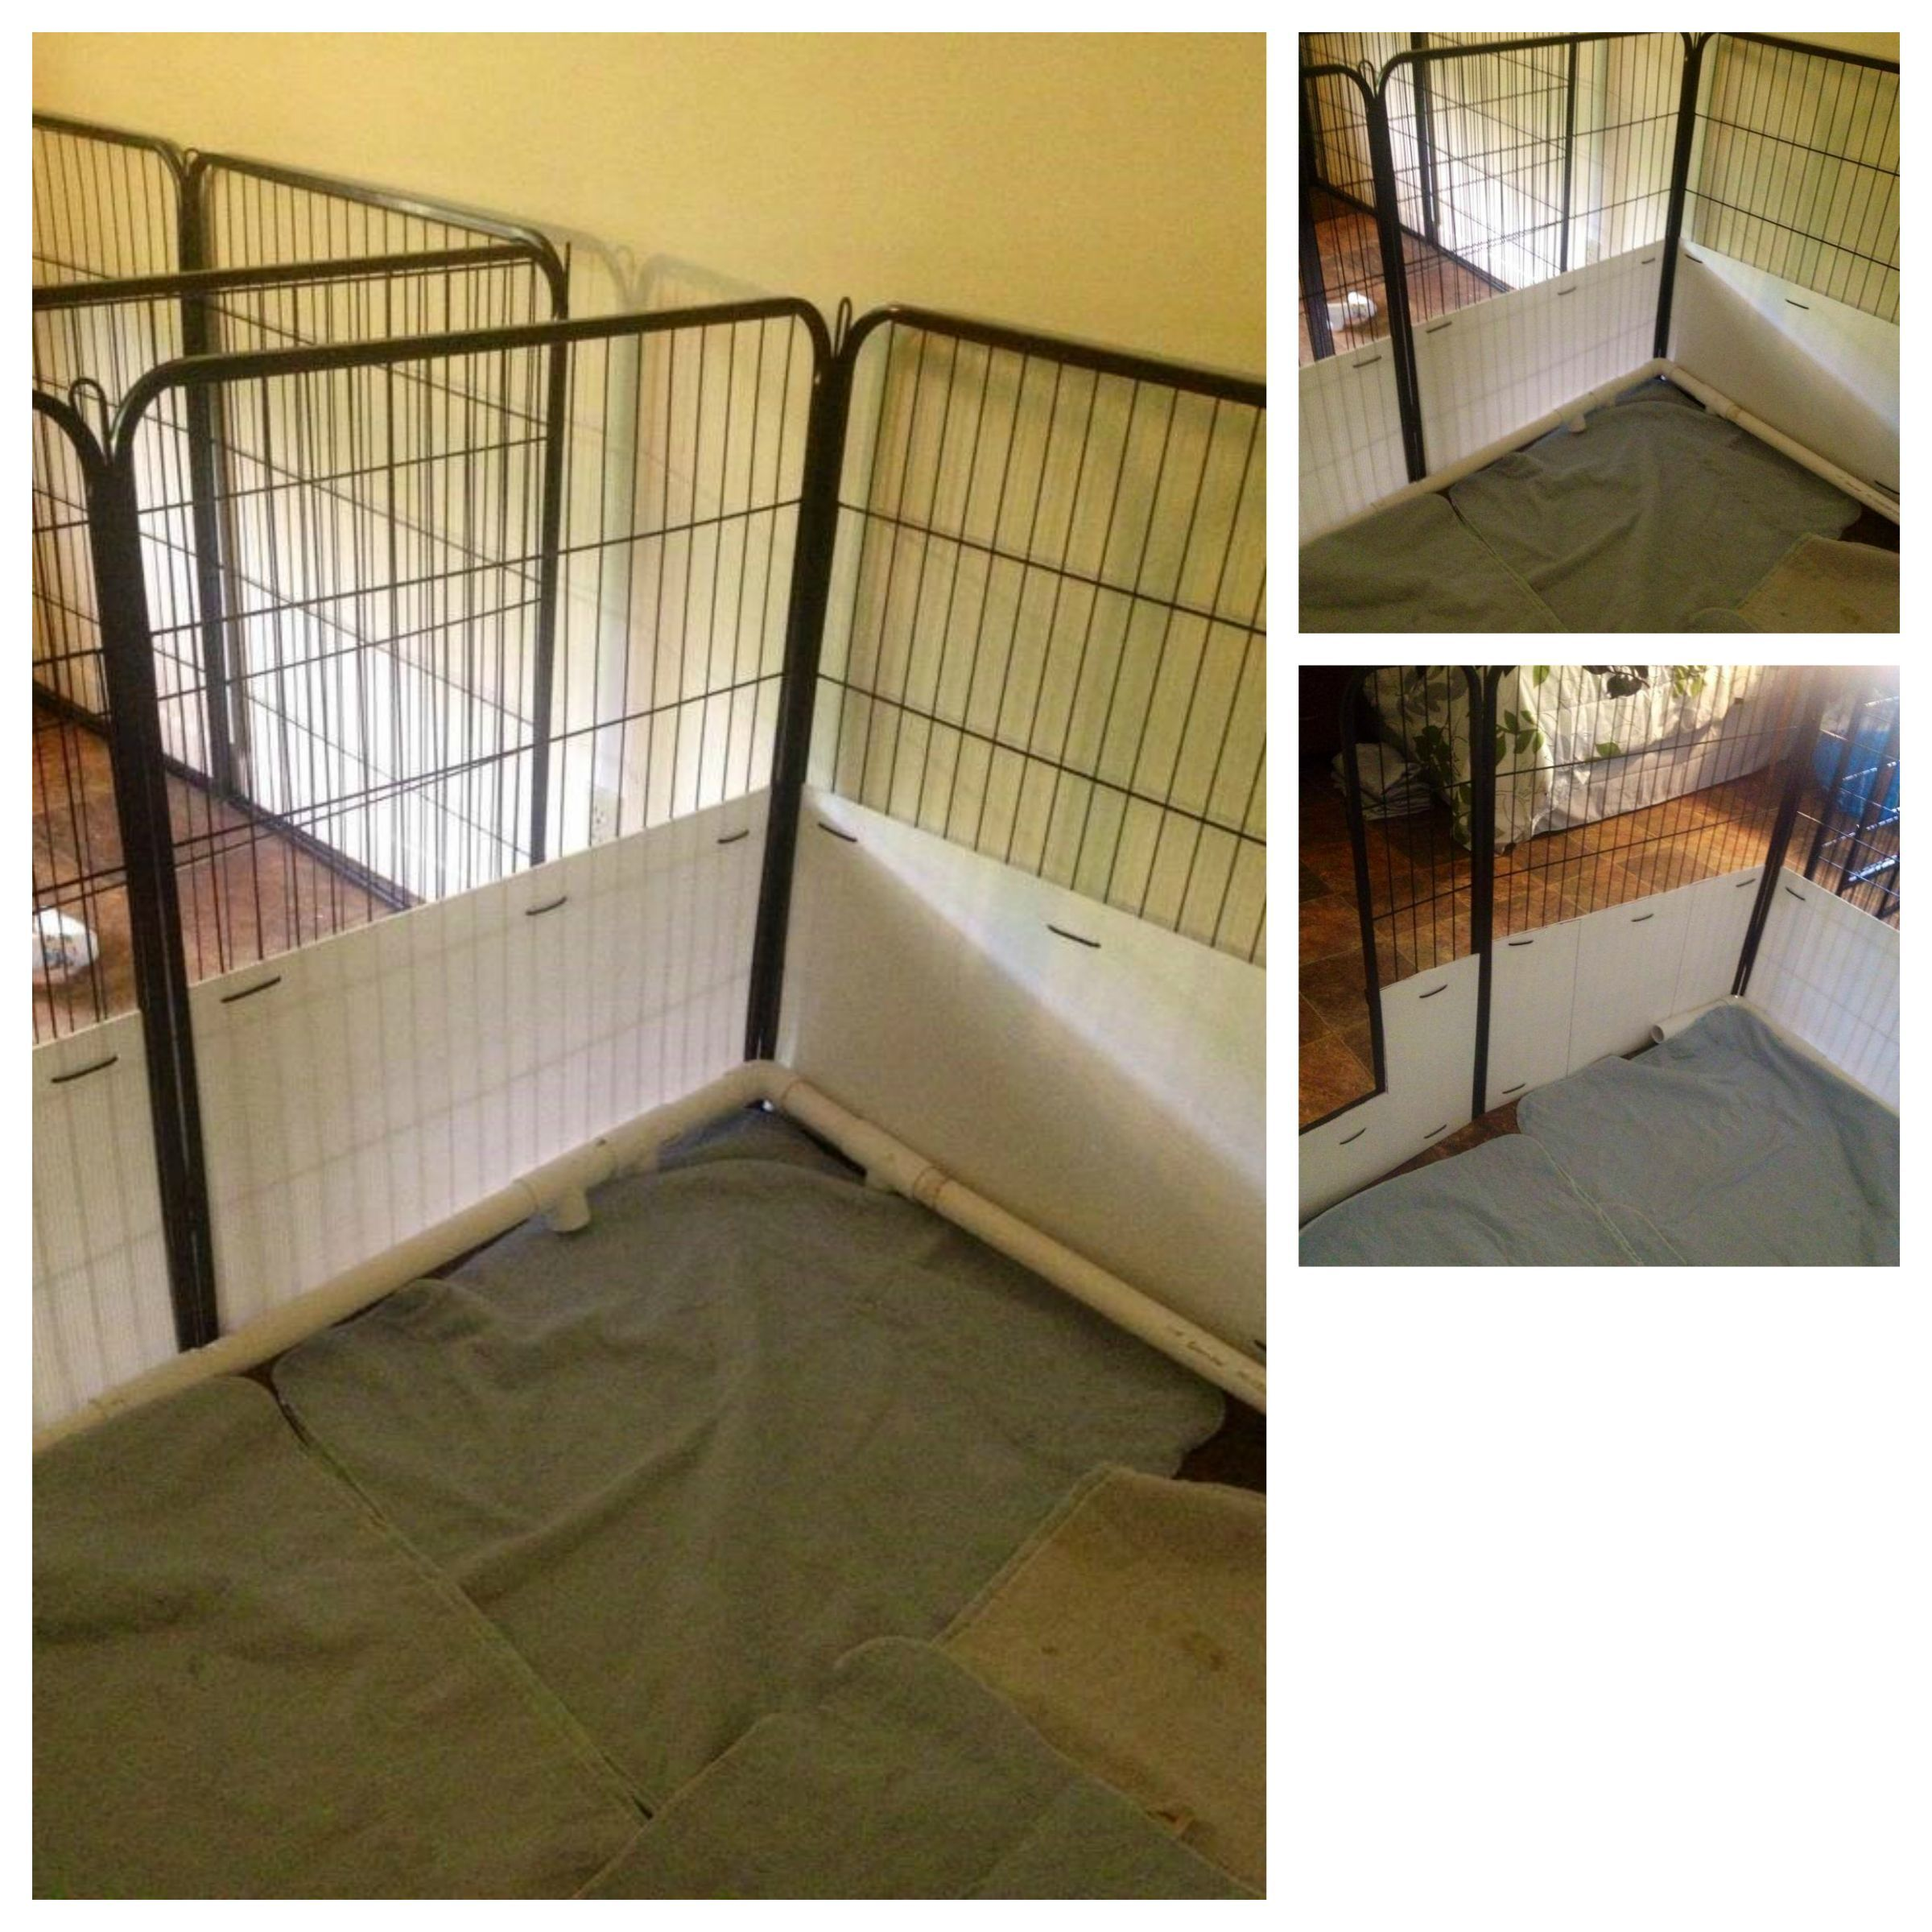 How To Convert An 8 Panel Exercise Pen Into A Whelping Box We Used